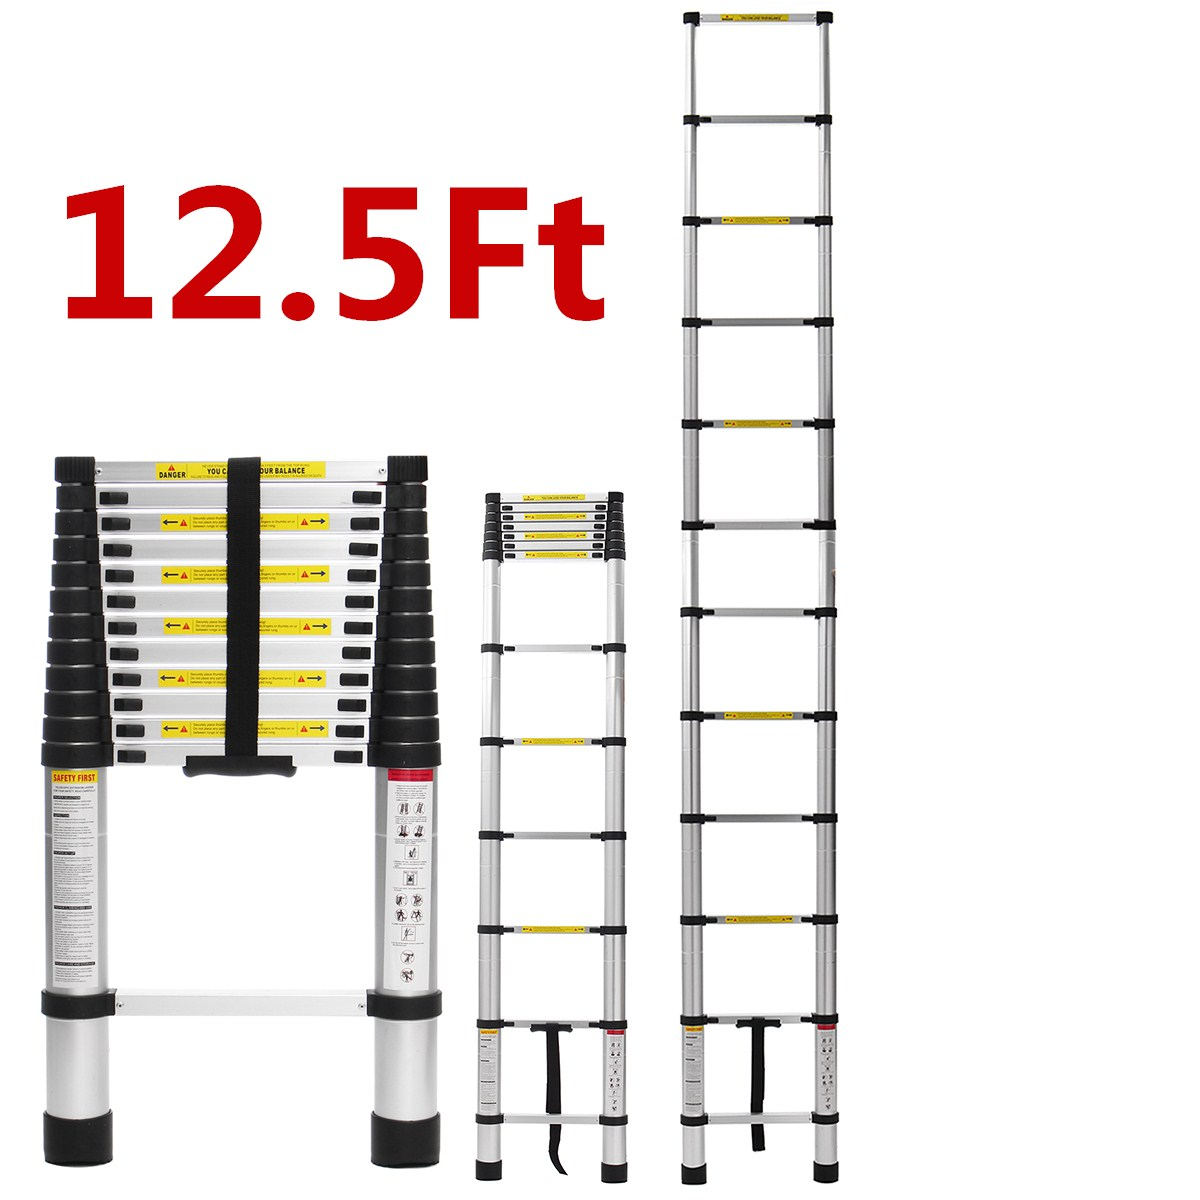 3.8m/3.2m Ladder Telescopic Alloy Aluminium Retractable Multifunctional Single Extension Ladder Foldable Drywall Home Tools